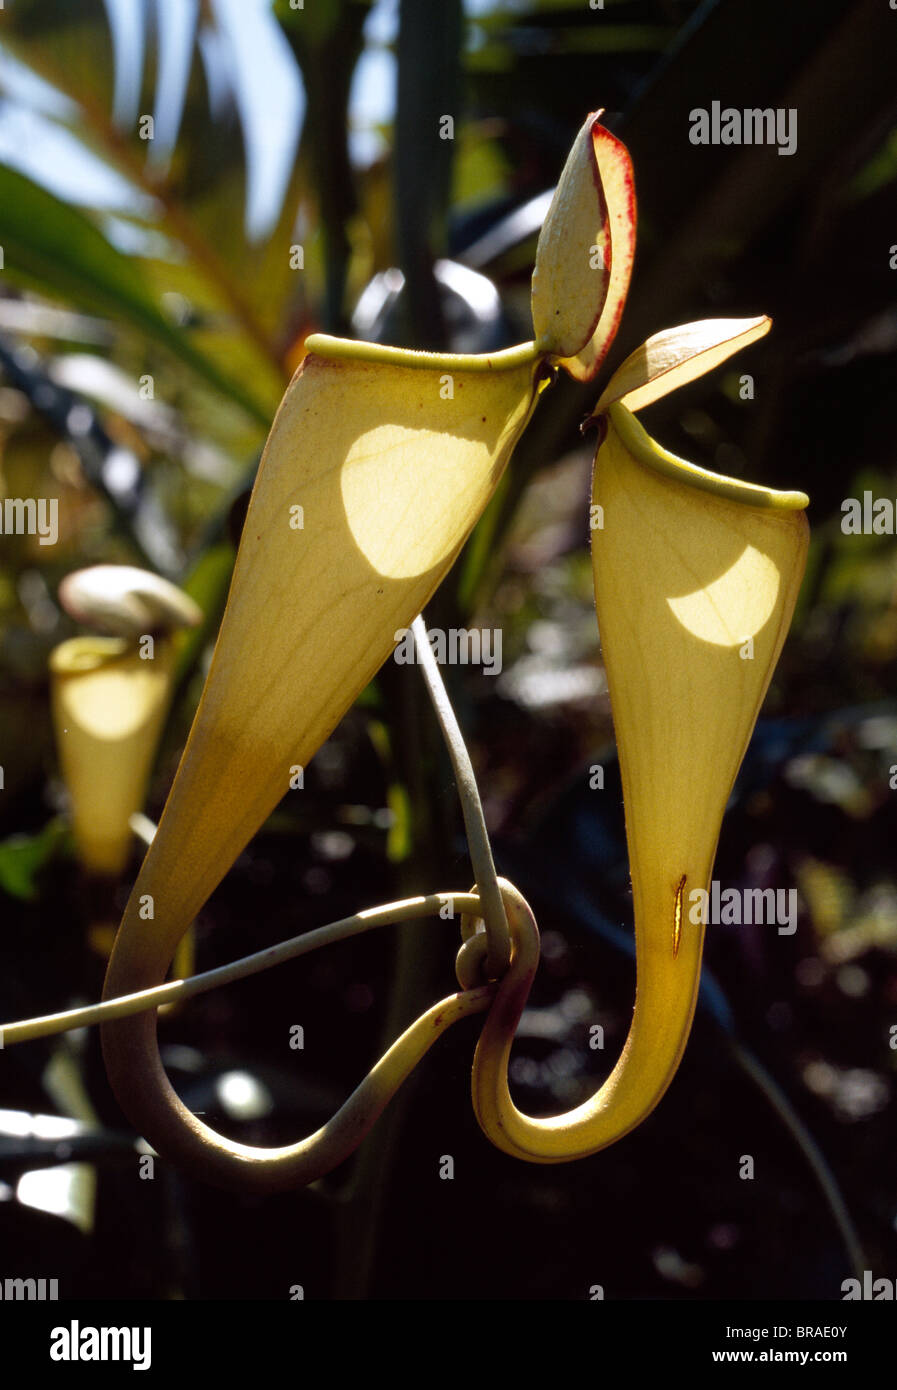 Madagascar pitcher plant, a carnivorous plant that produces impressive pitchers that catch the insect prey, Madagascar - Stock Image